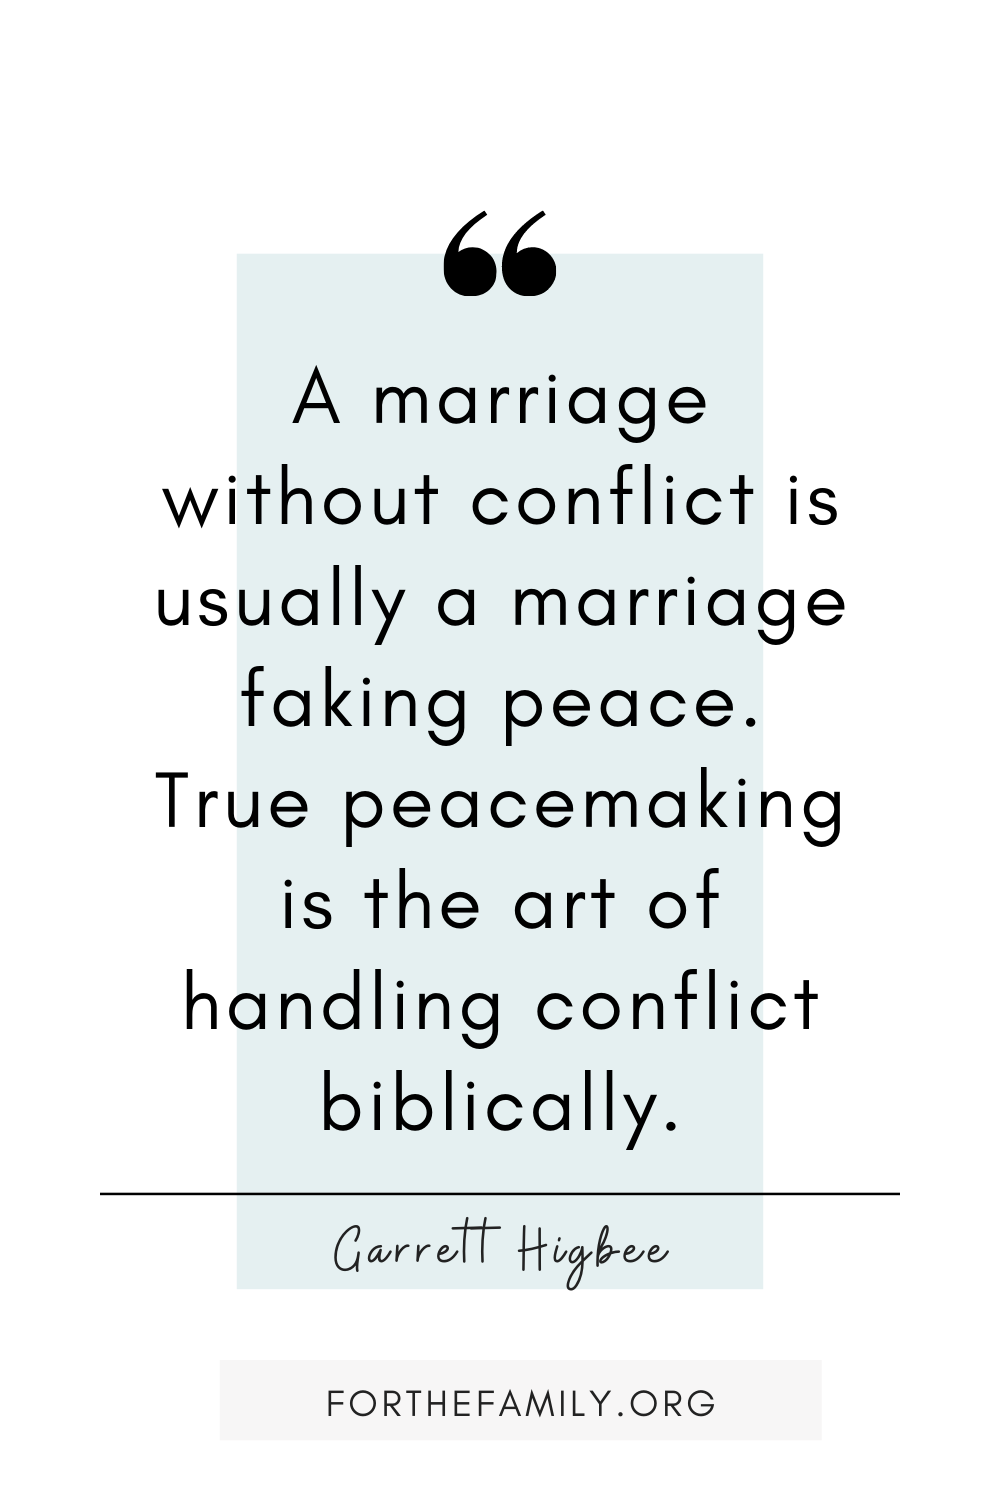 A marriage without conflict is usually a marriage faking peace. True peacemaking is the art of handling conflict biblically.